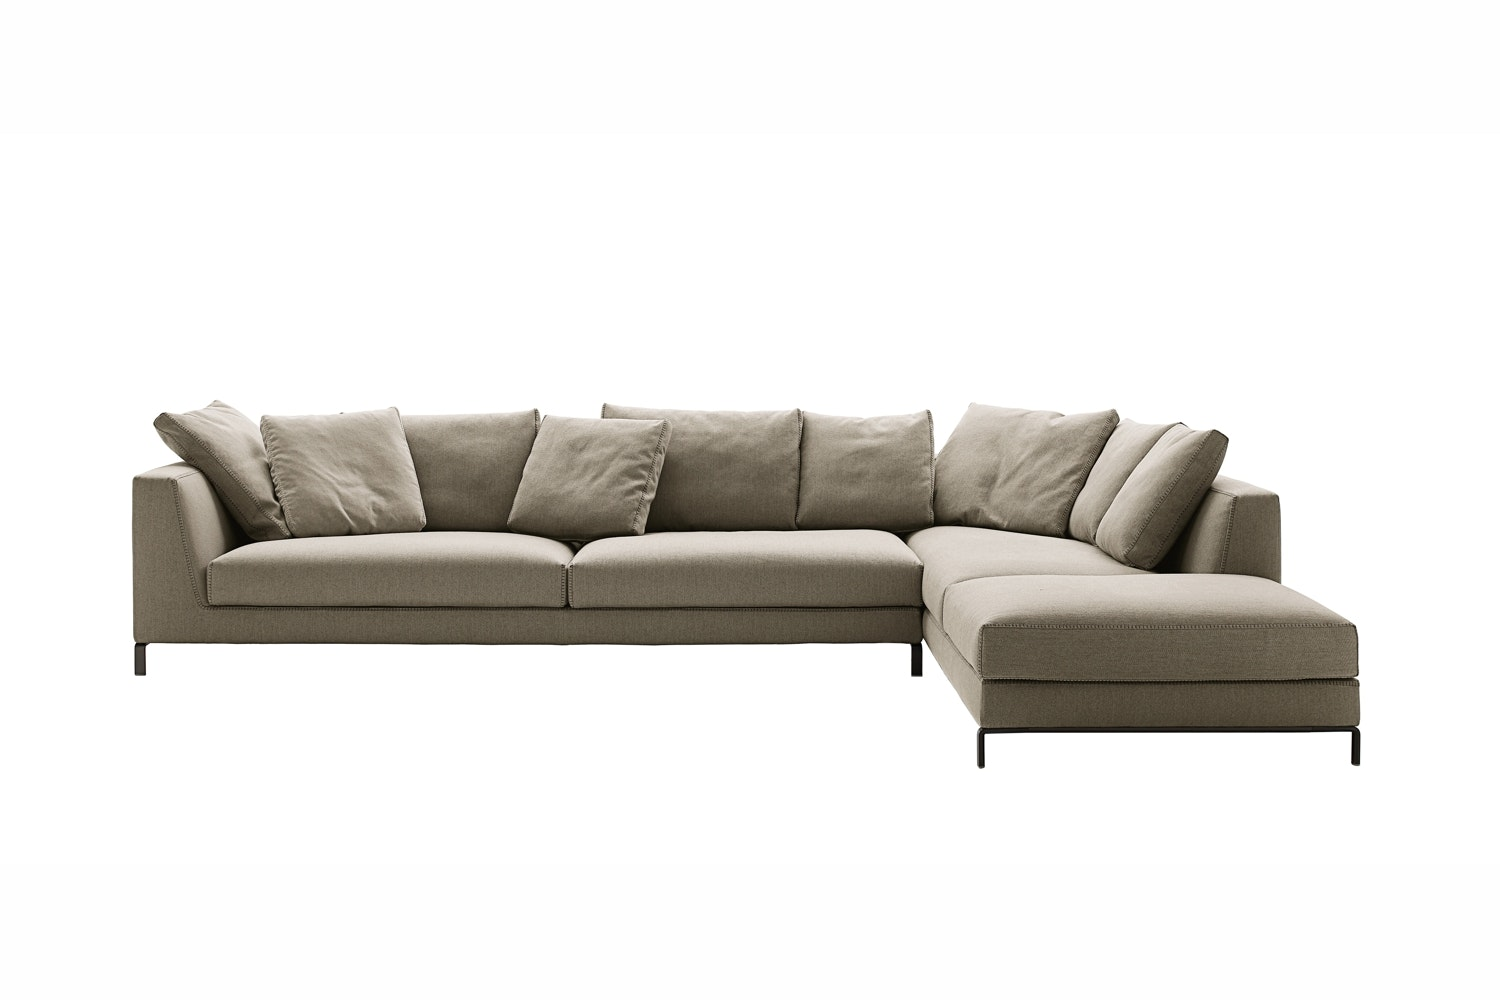 Ray Sofa with Right Chaise in Fabric by Antonio Citterio for B&B Italia